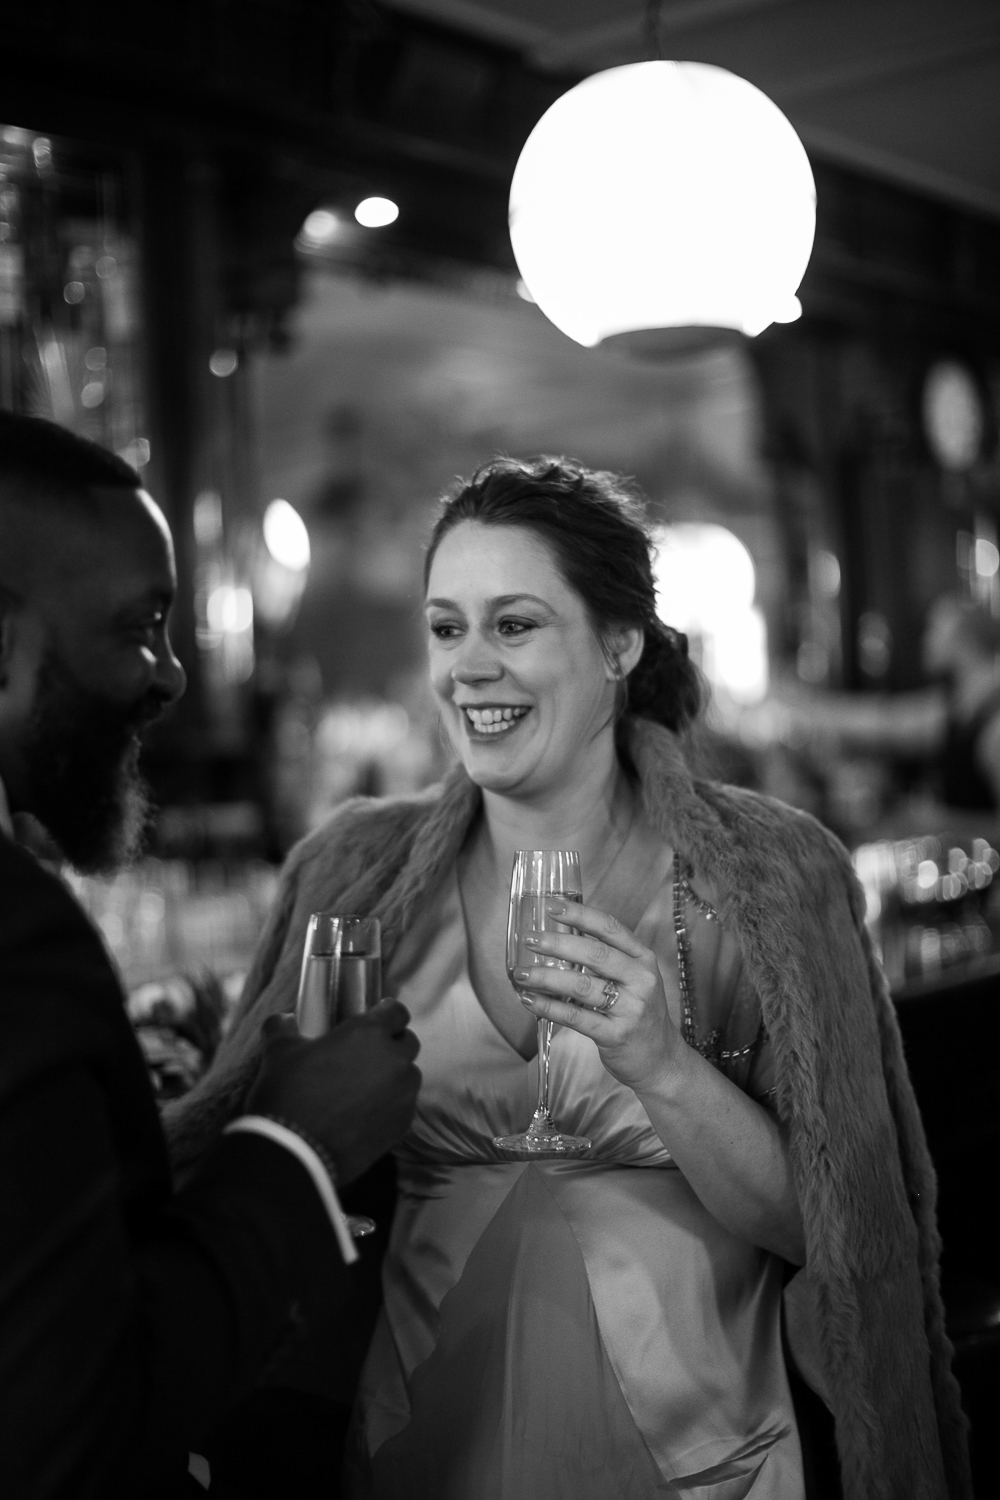 Bride toasting the groom with champagne at their intimate restaurant wedding venue in Manhattan. | Upper West Side Intimate Wedding | Kate & Sylvester's wedding in Manhattan.